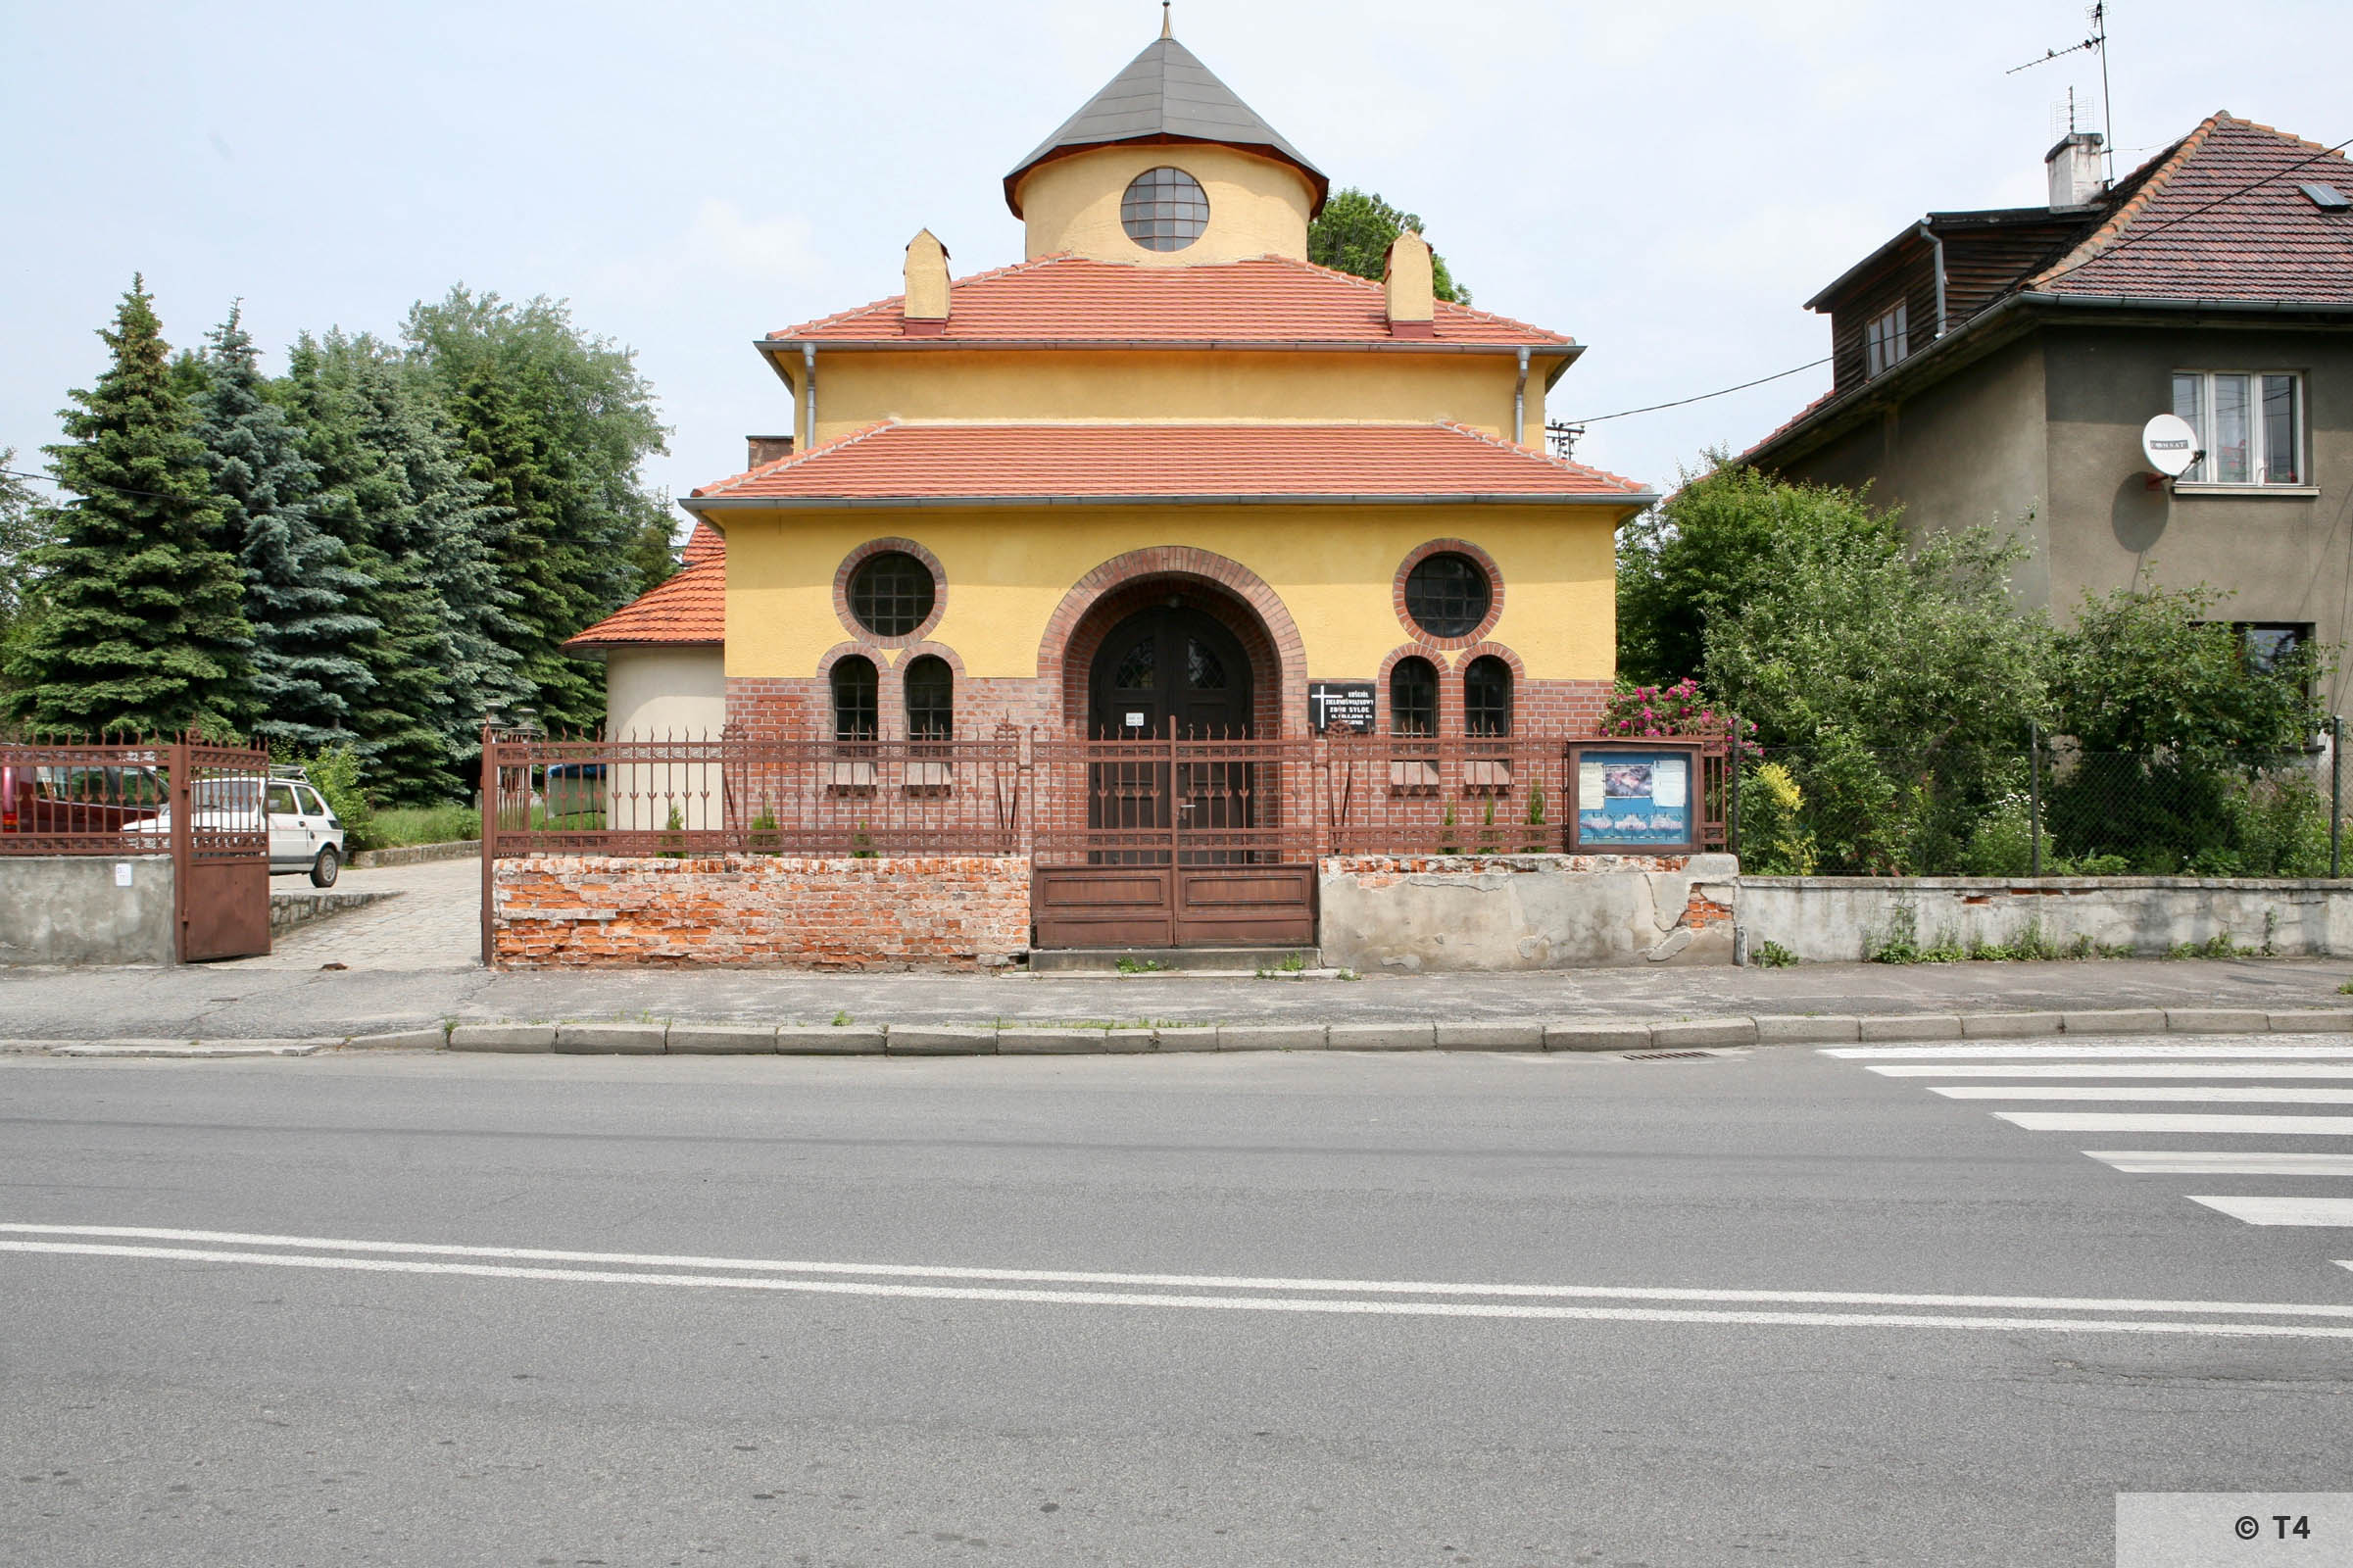 Building in front of Jewish cemetery in Prudnik. 2006 T4 5274